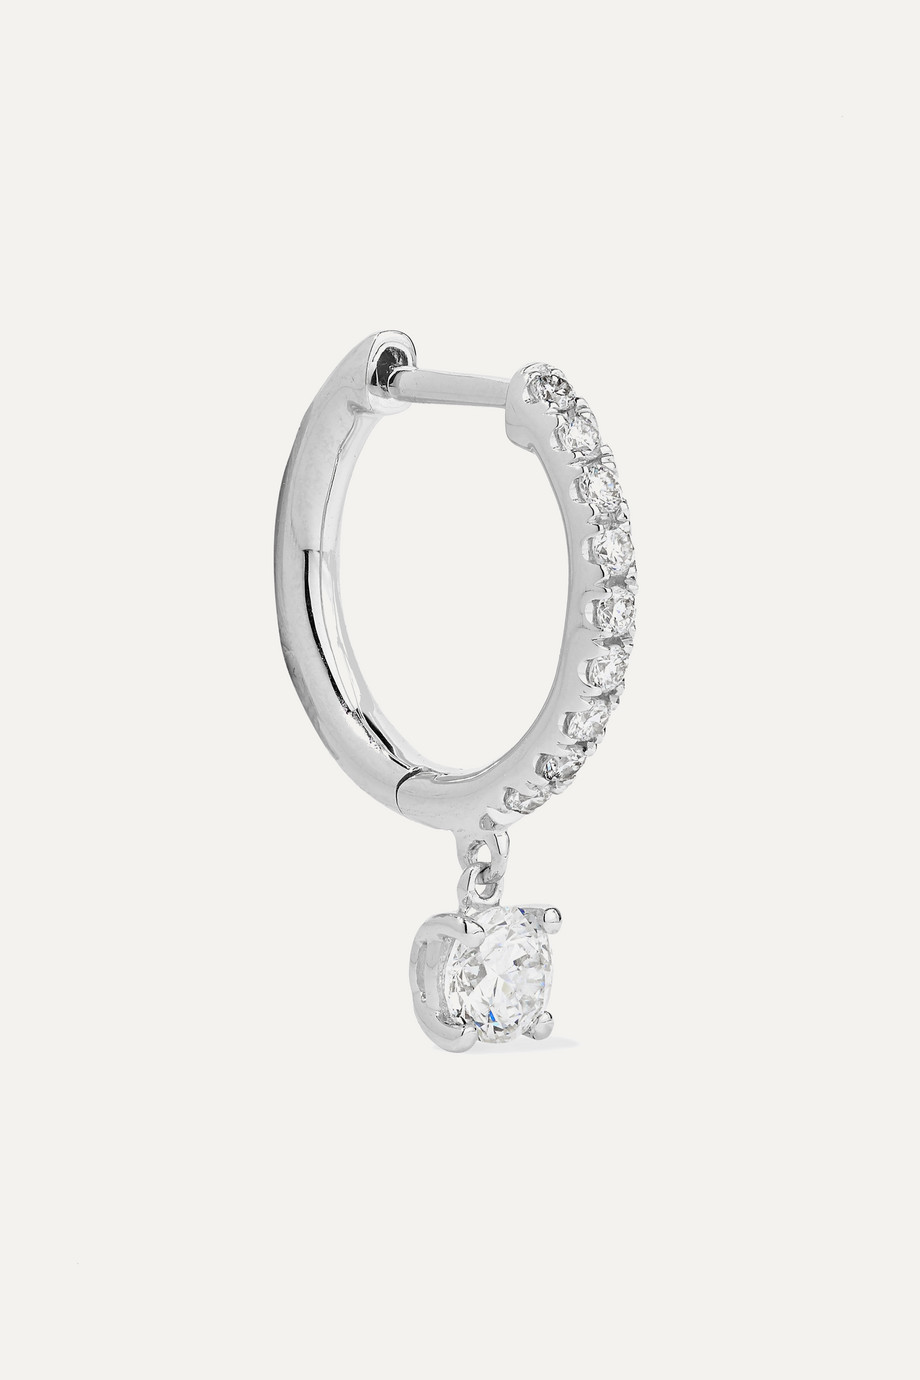 Anita Ko 18-karat white gold diamond hoop earring